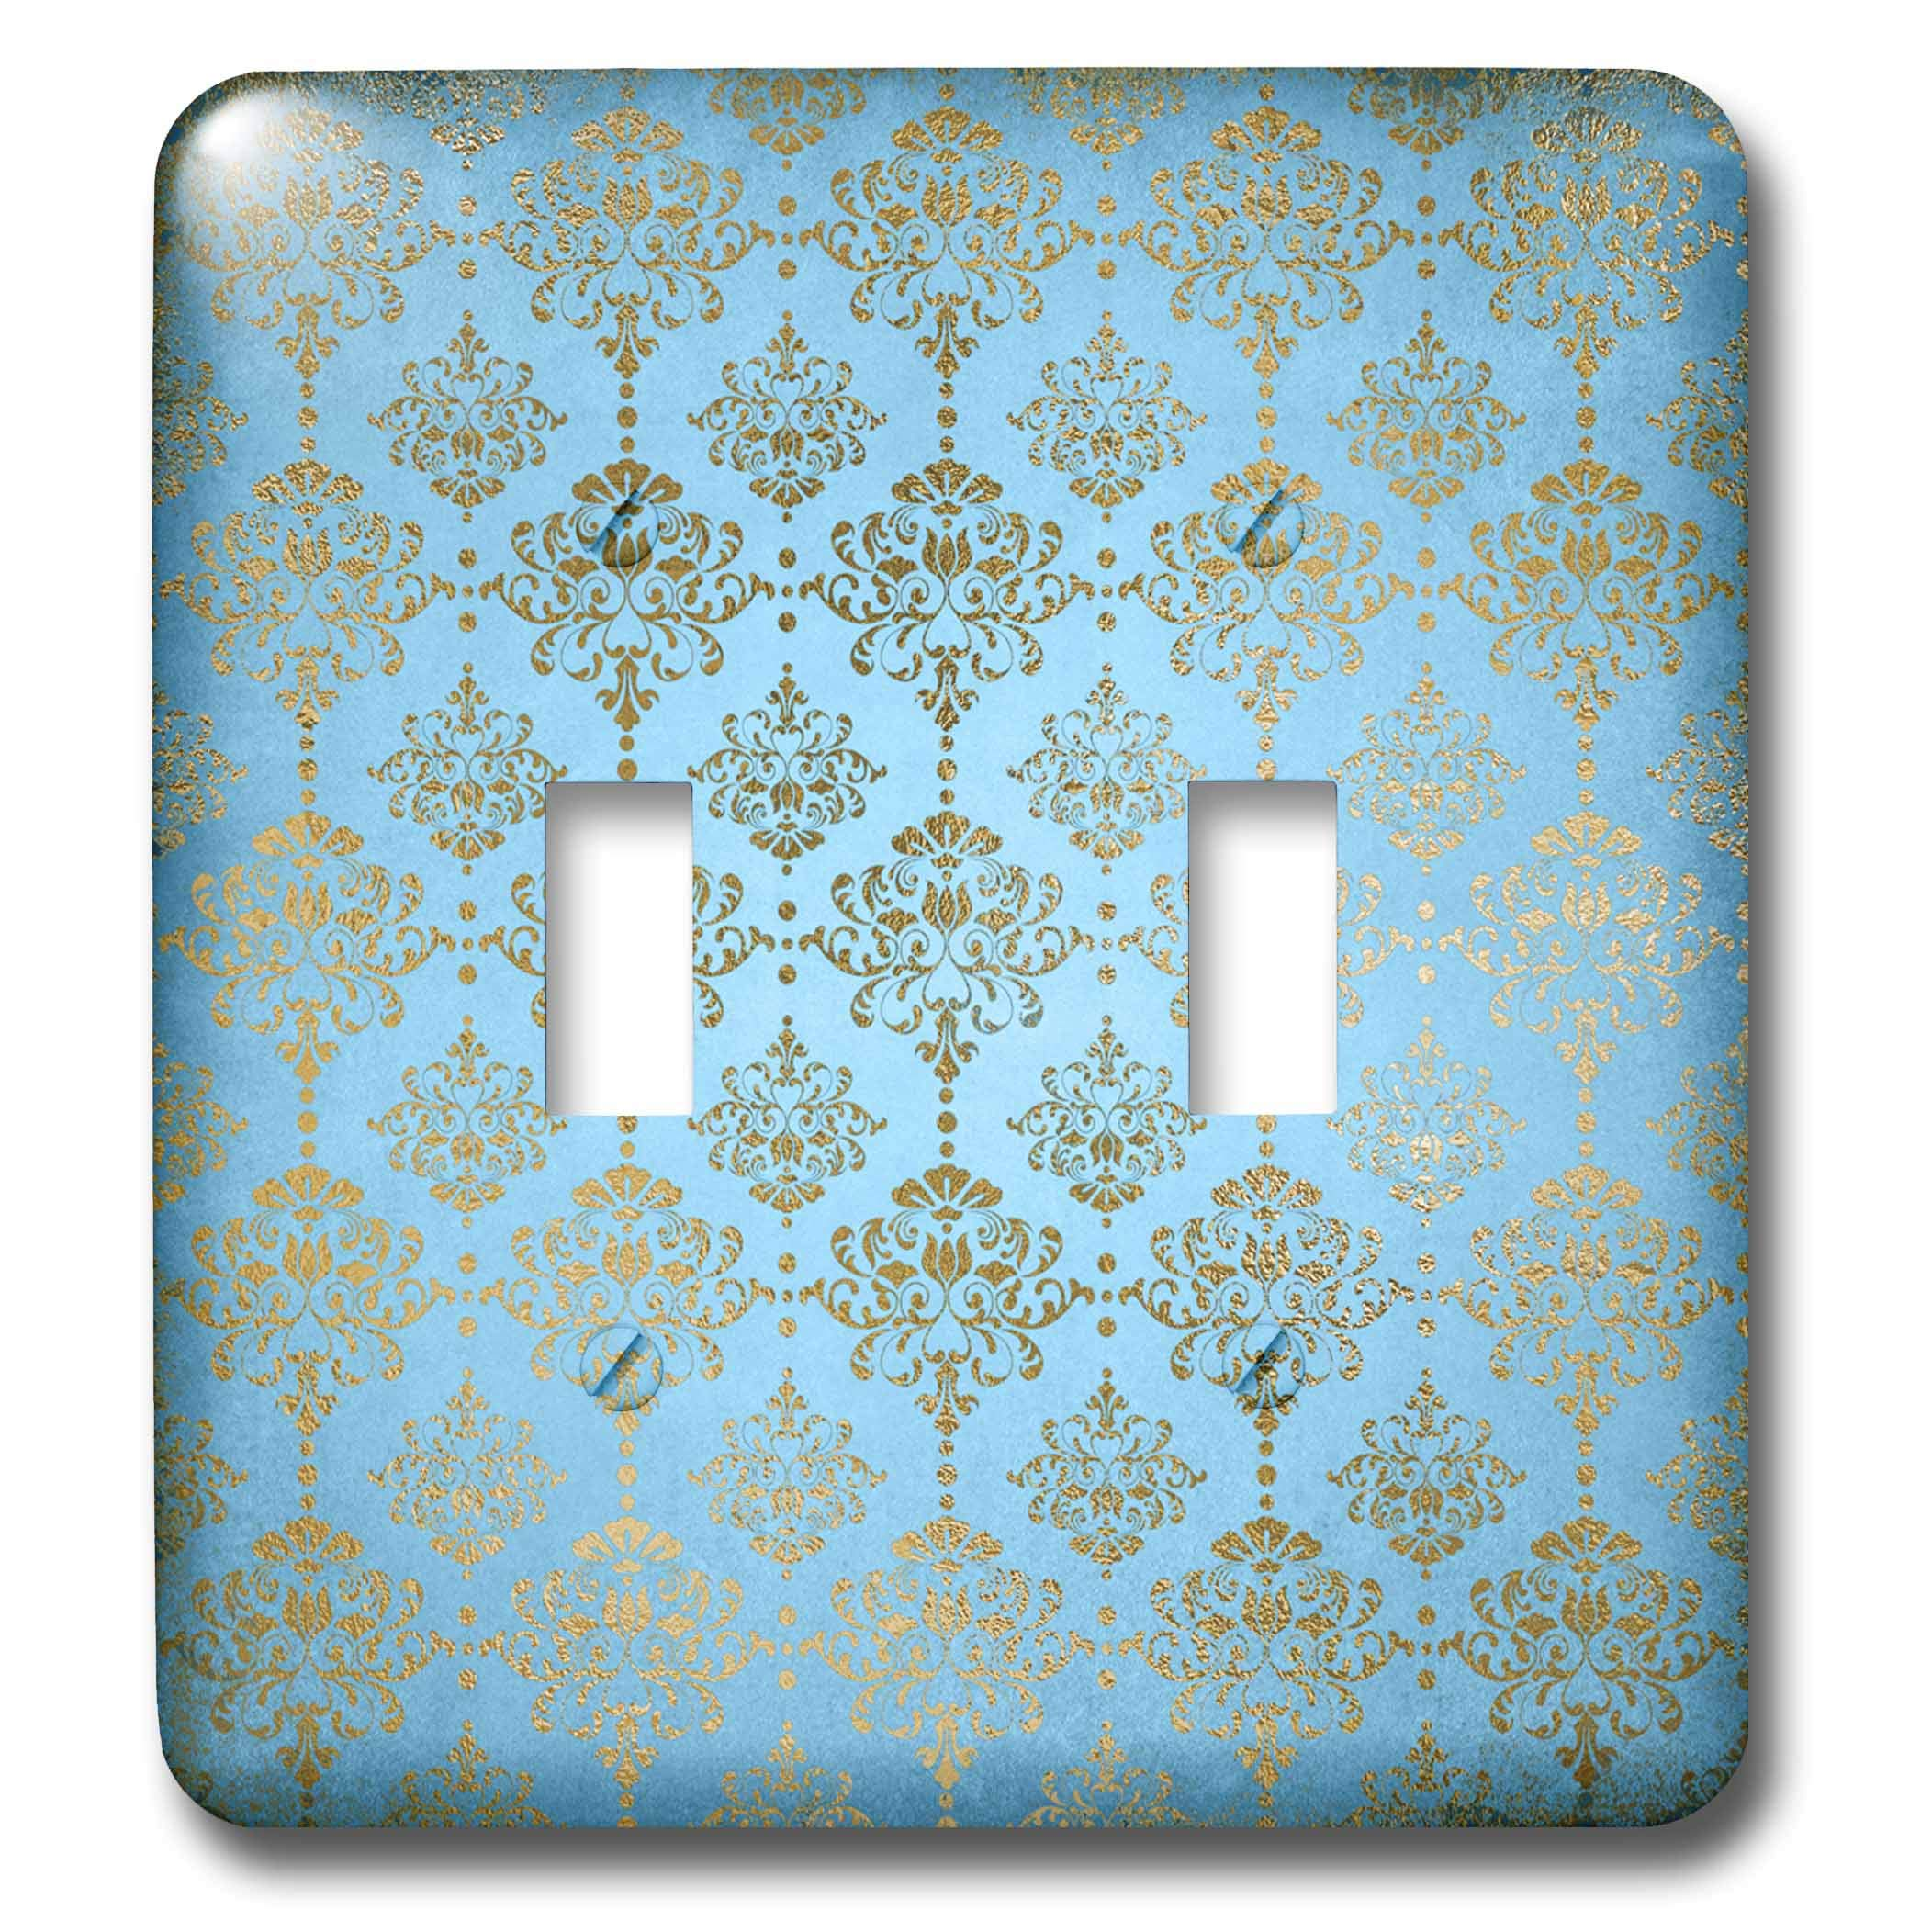 3dRose Uta Naumann Faux Glitter Pattern - Image of Sky Blue and Gold Metal Foil Vintage Luxury Damask Pattern - Light Switch Covers - double toggle switch (lsp_290167_2) by 3dRose (Image #1)